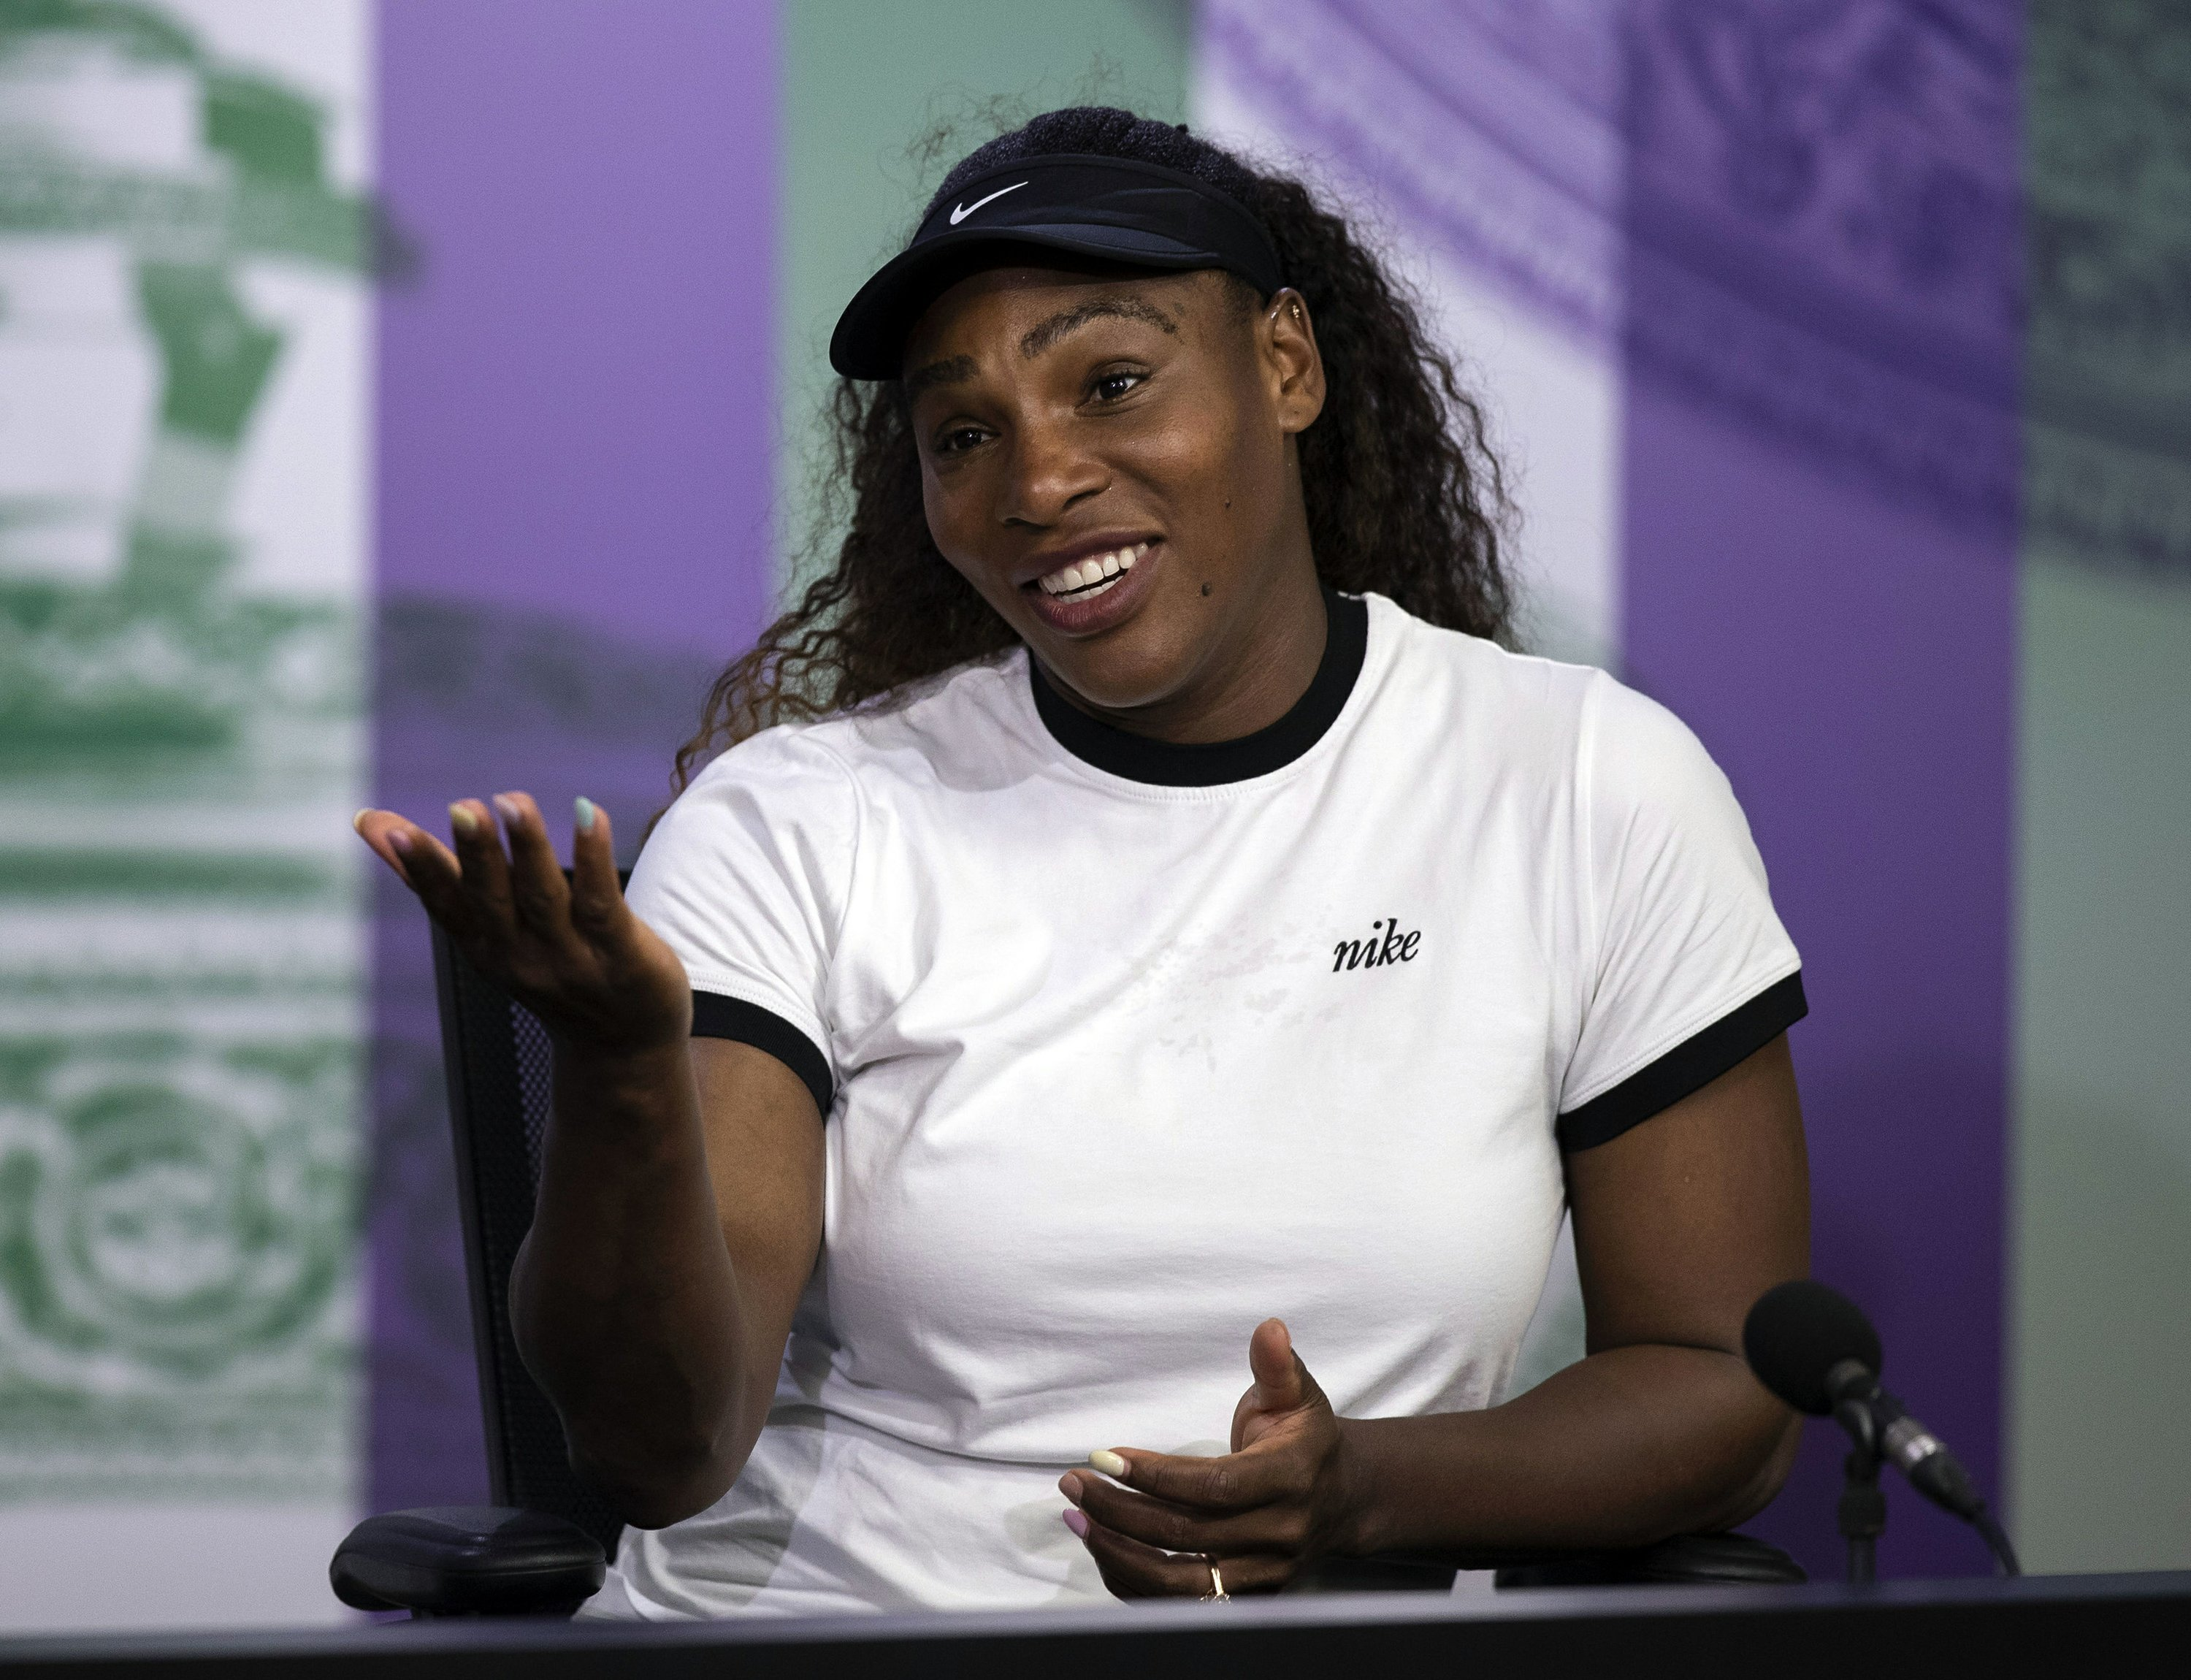 Serena Williams says it's unfair she's drug-tested more